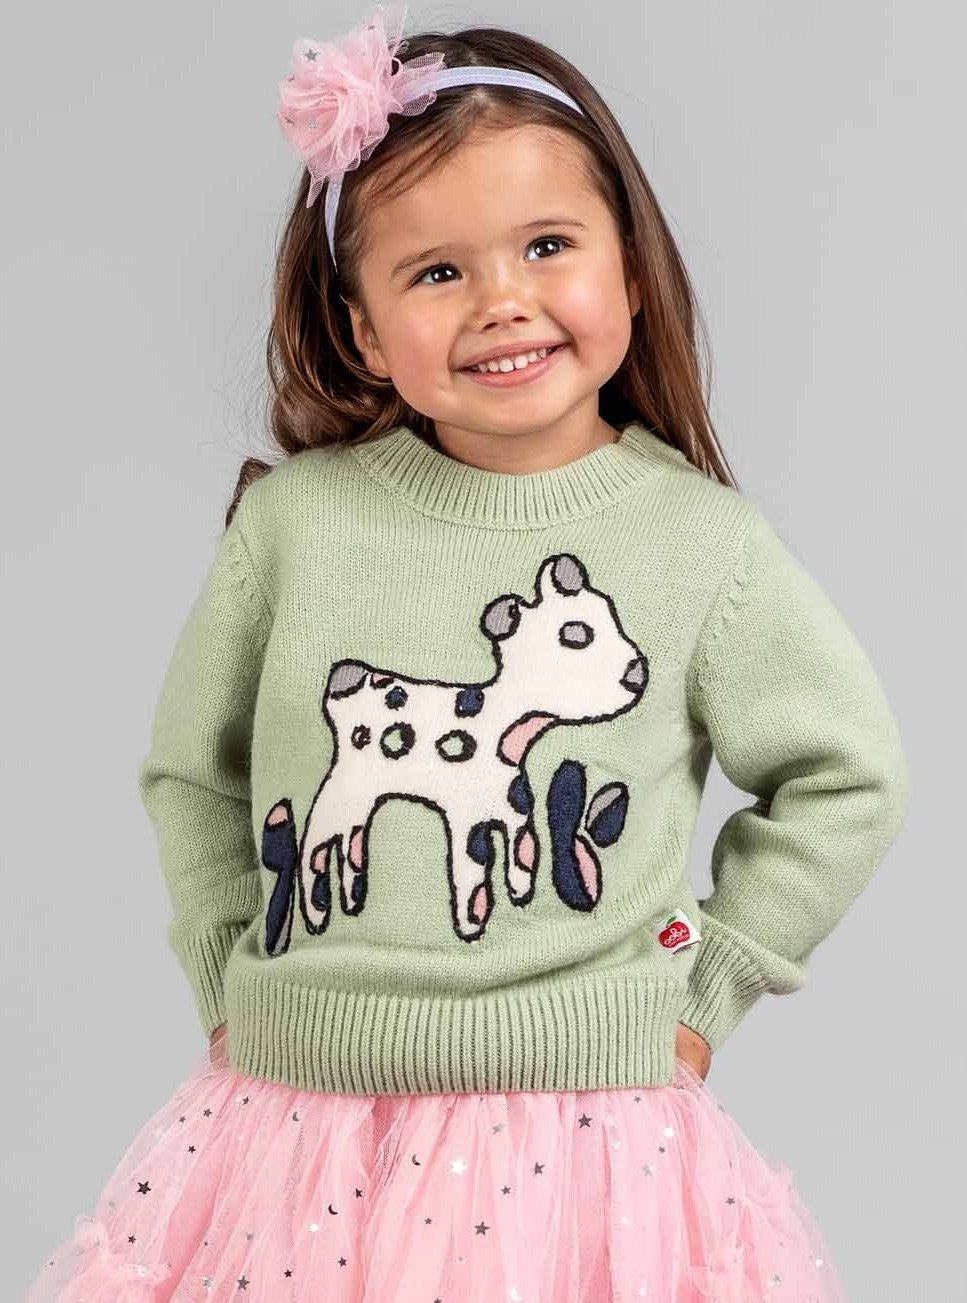 Lambykins Sweater Grassy Green, Sweaters & Cardigans - Oobi Girls Kid Fashion